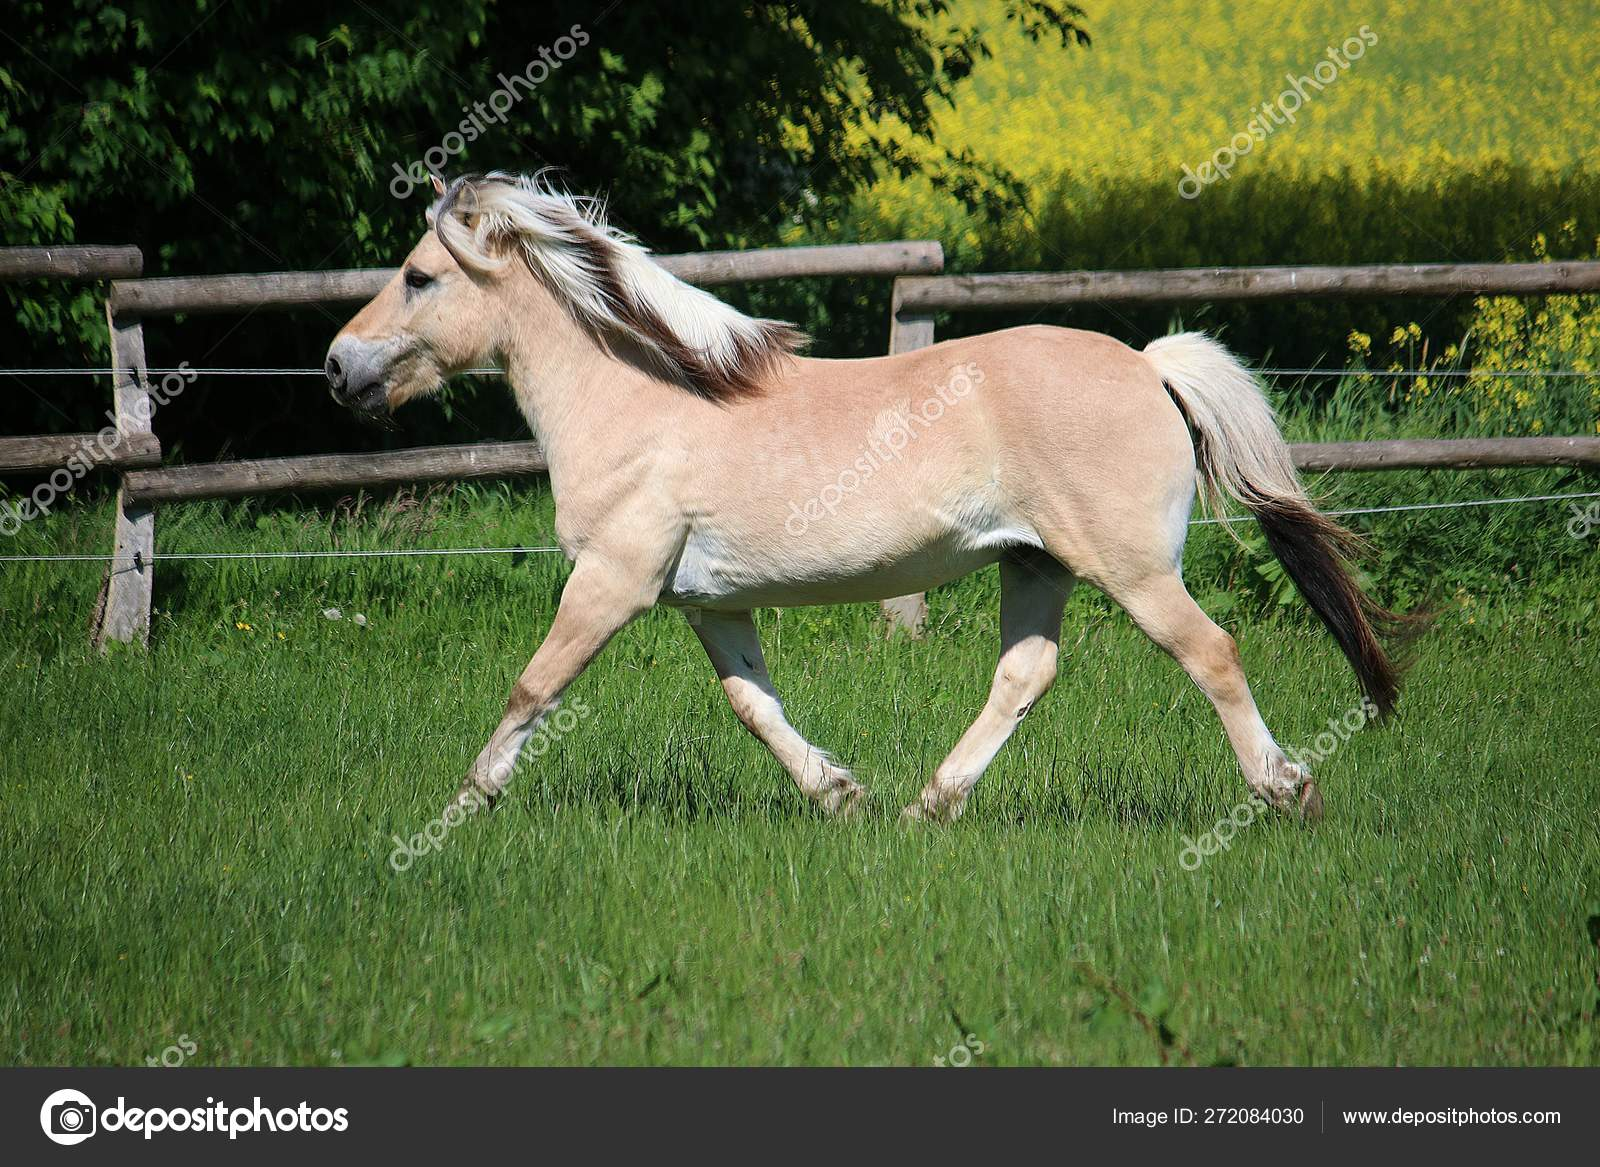 Beautiful Fjord Horse Running Paddock Sunshine Stock Photo C Biancagrueneberg 272084030